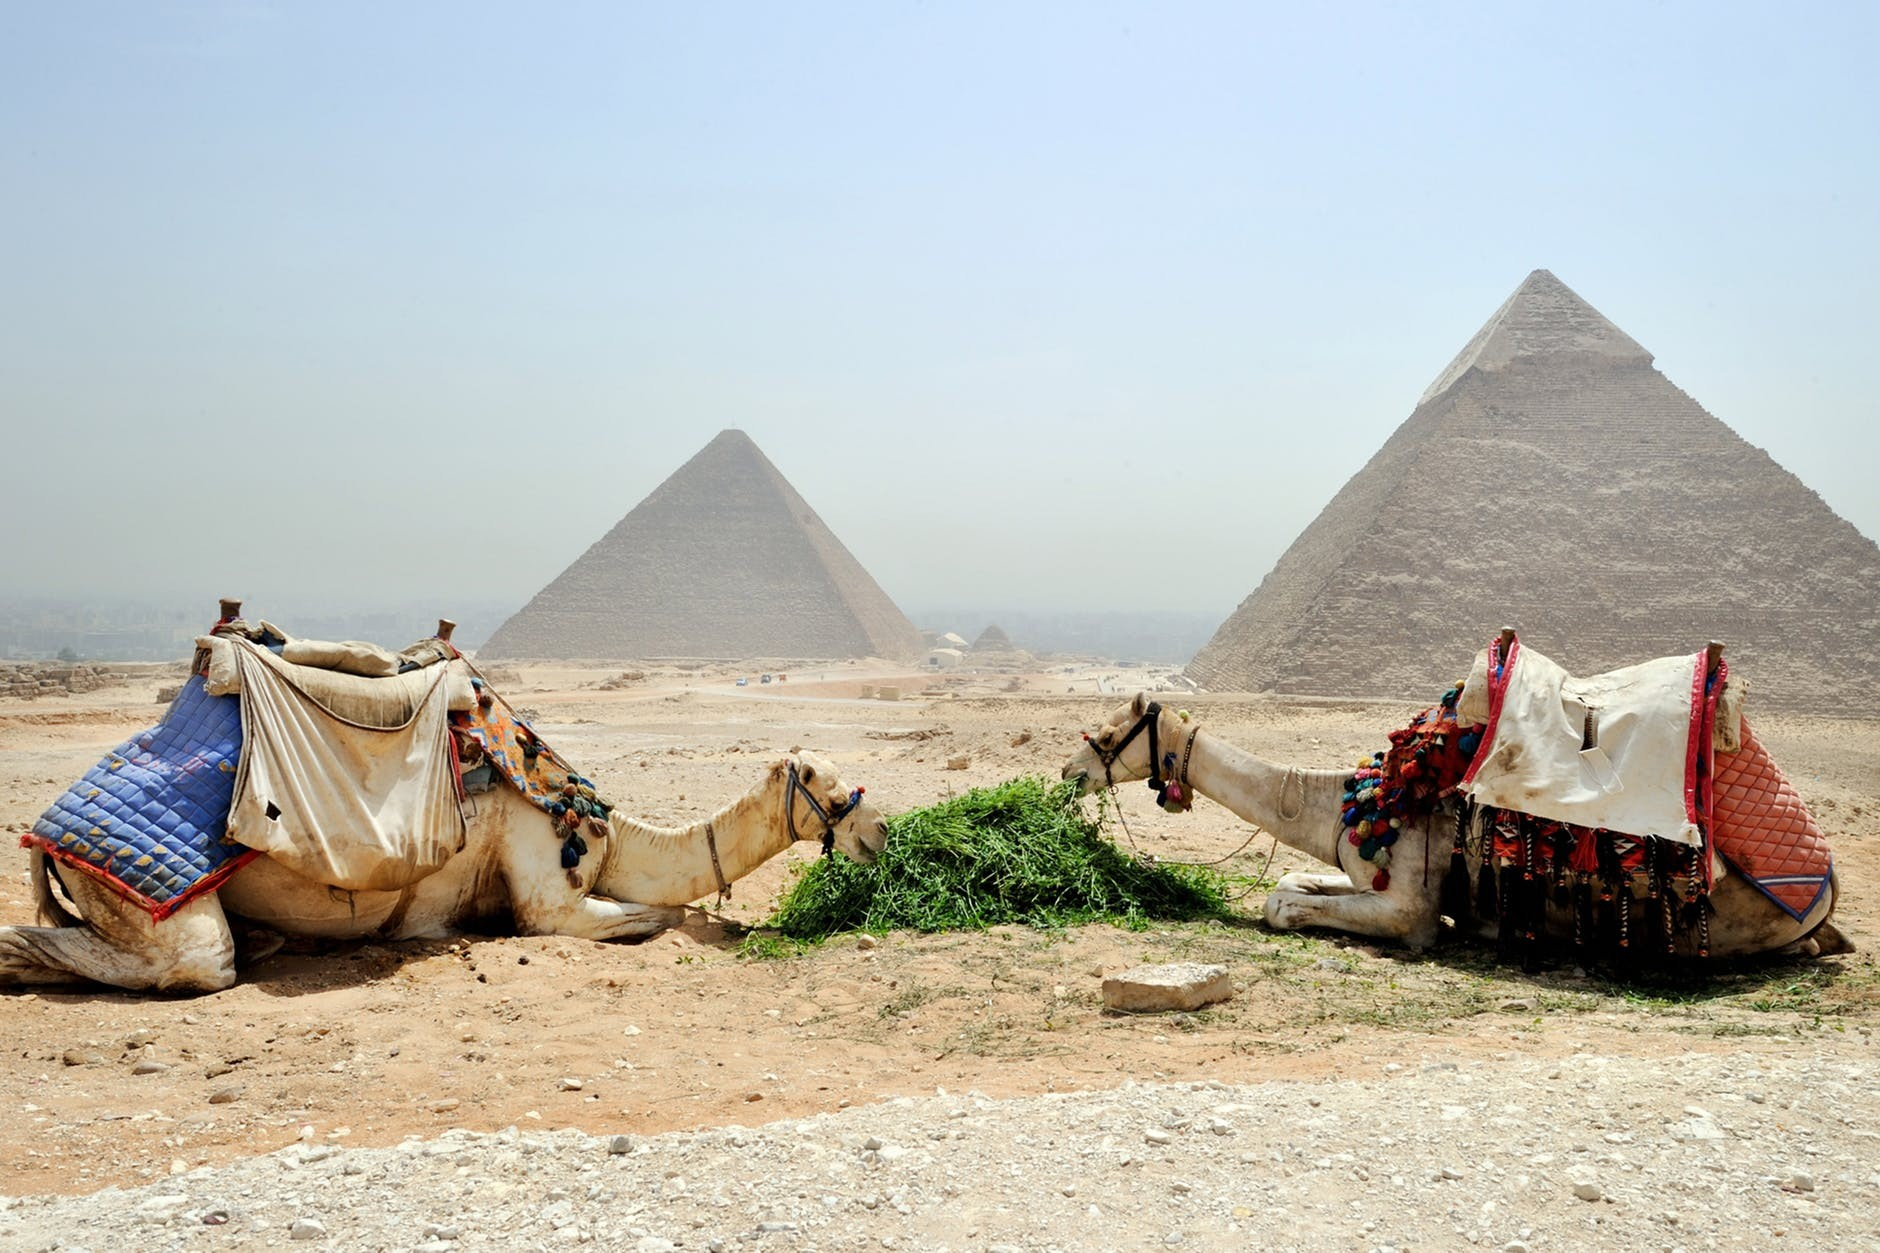 Budget Day Trip to Cairo from Hurghada by Road